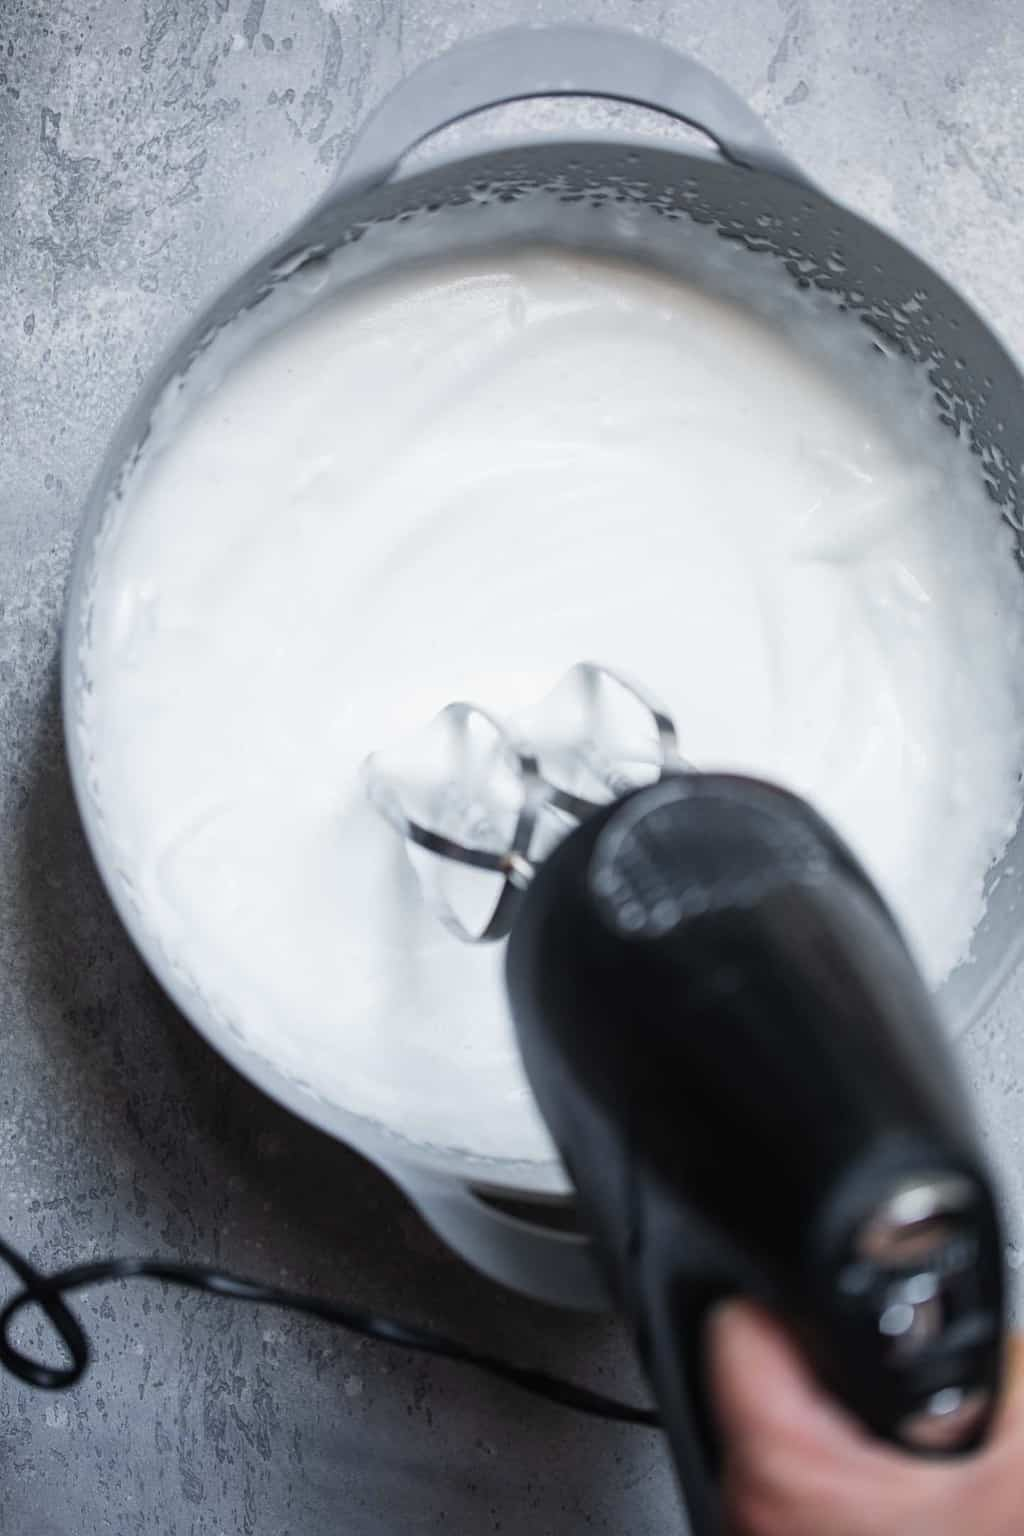 Whipped aquafaba in a mixing bowl